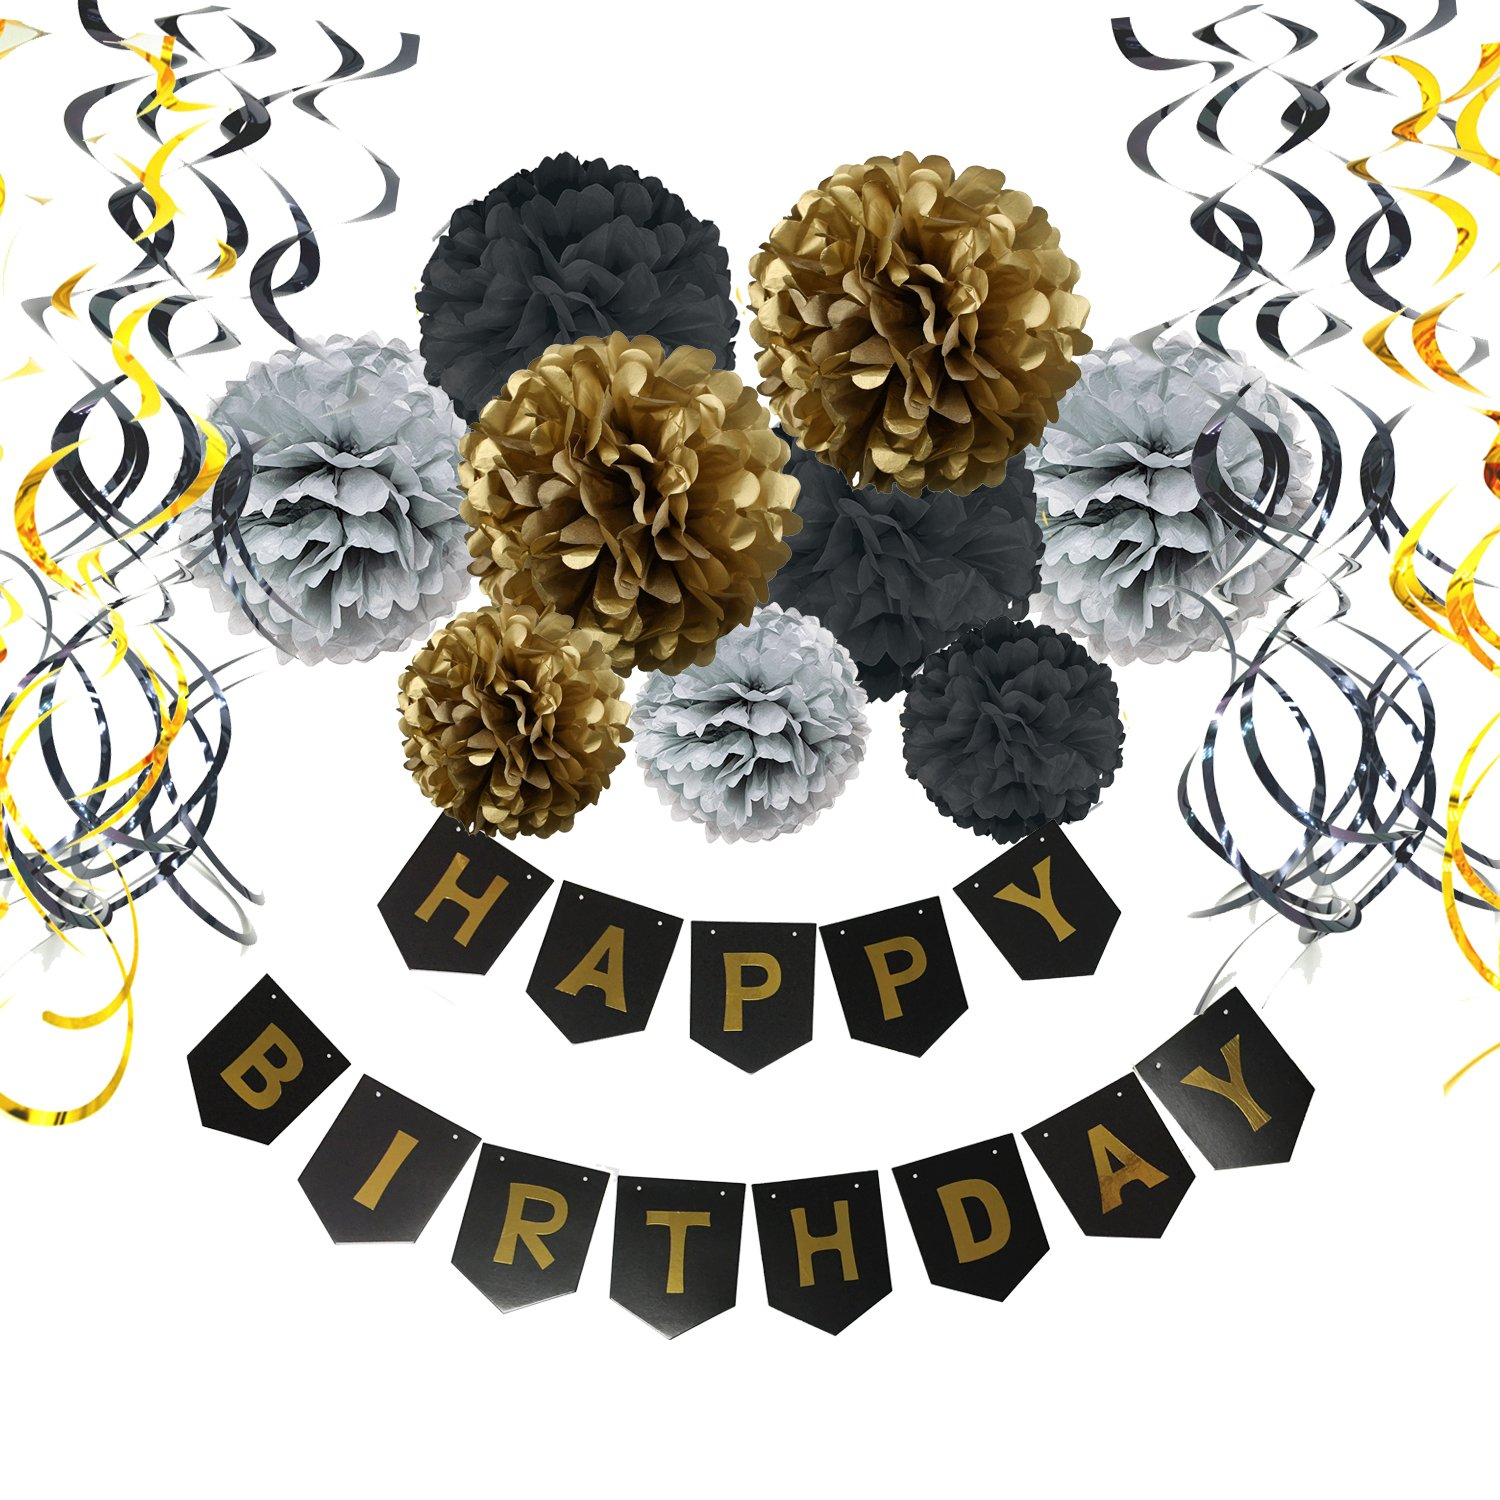 Birthday Decorations, Cocodeko Happy Birthday Banner Bunting with Tissue Paper Pom Poms and Hanging Swirl Decor for Birthday Party Decorations - Black, Gold and Silver